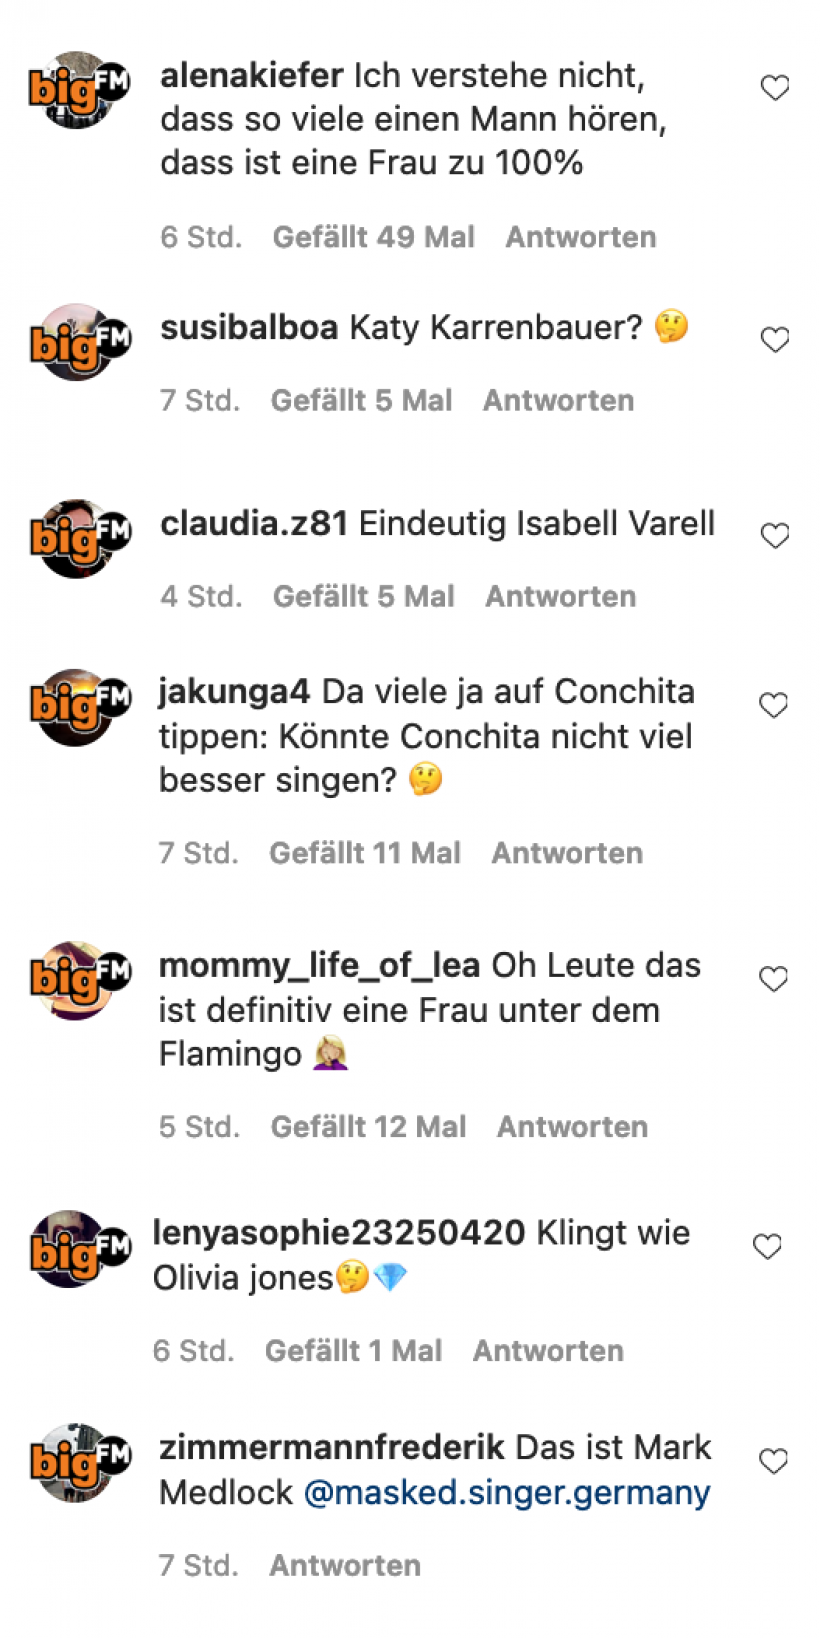 The-Masked-Singer-Flamingo-Andere-Meinungen.png